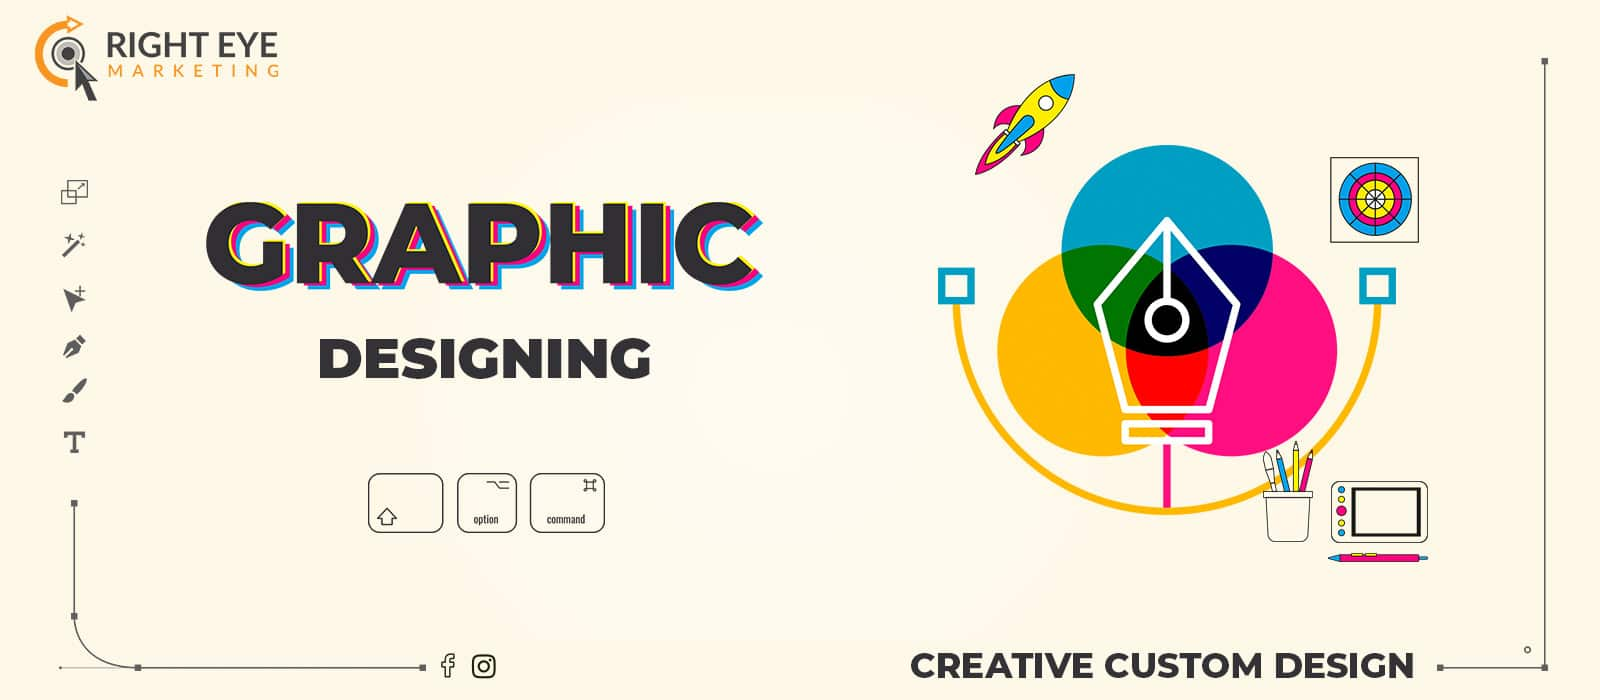 graphic designing by Right Eye Marketing